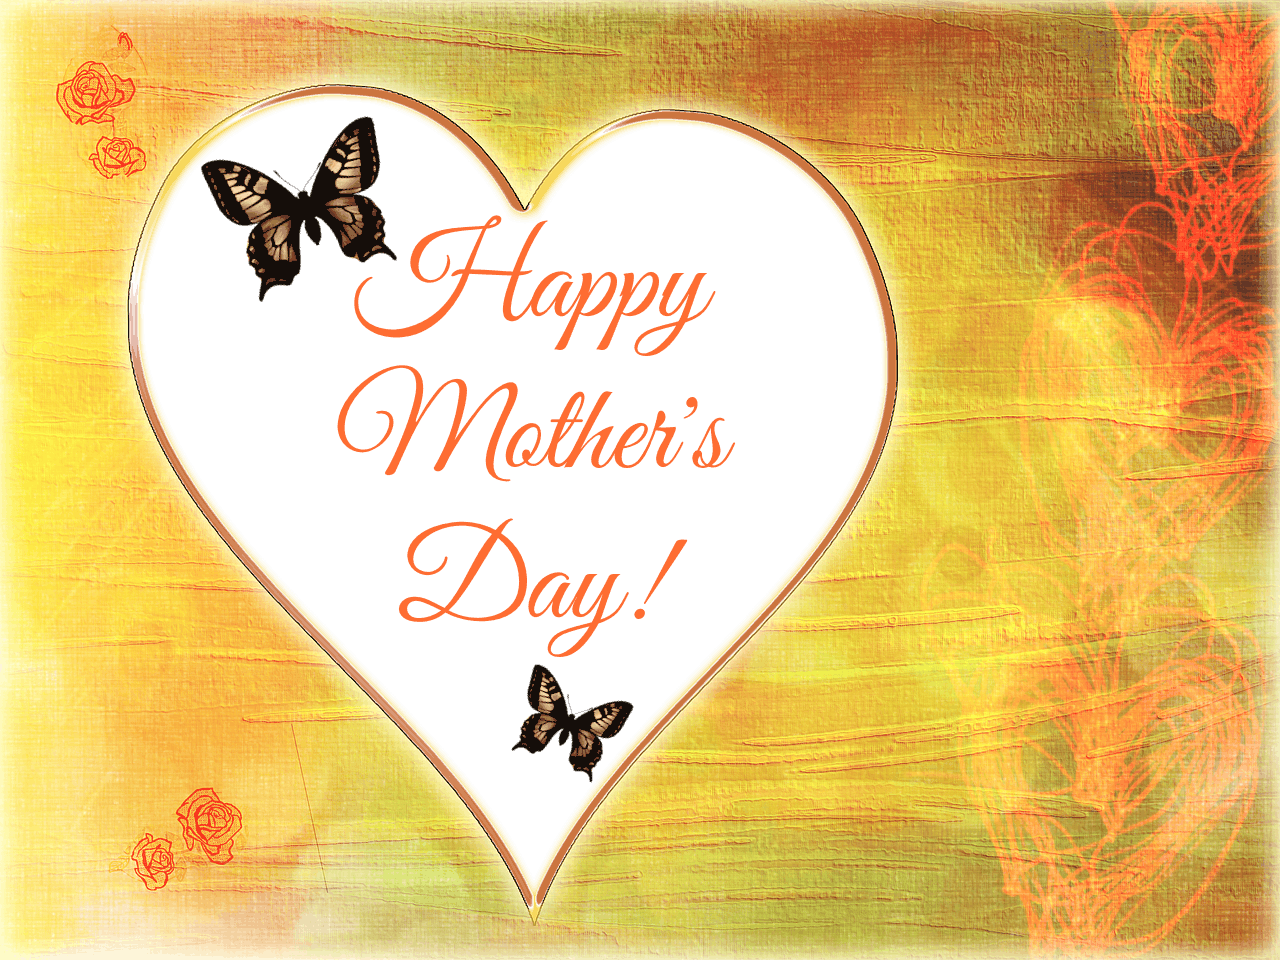 Wifes Saying On Mothers Day Sayings: 25 Mother's Day Quotes